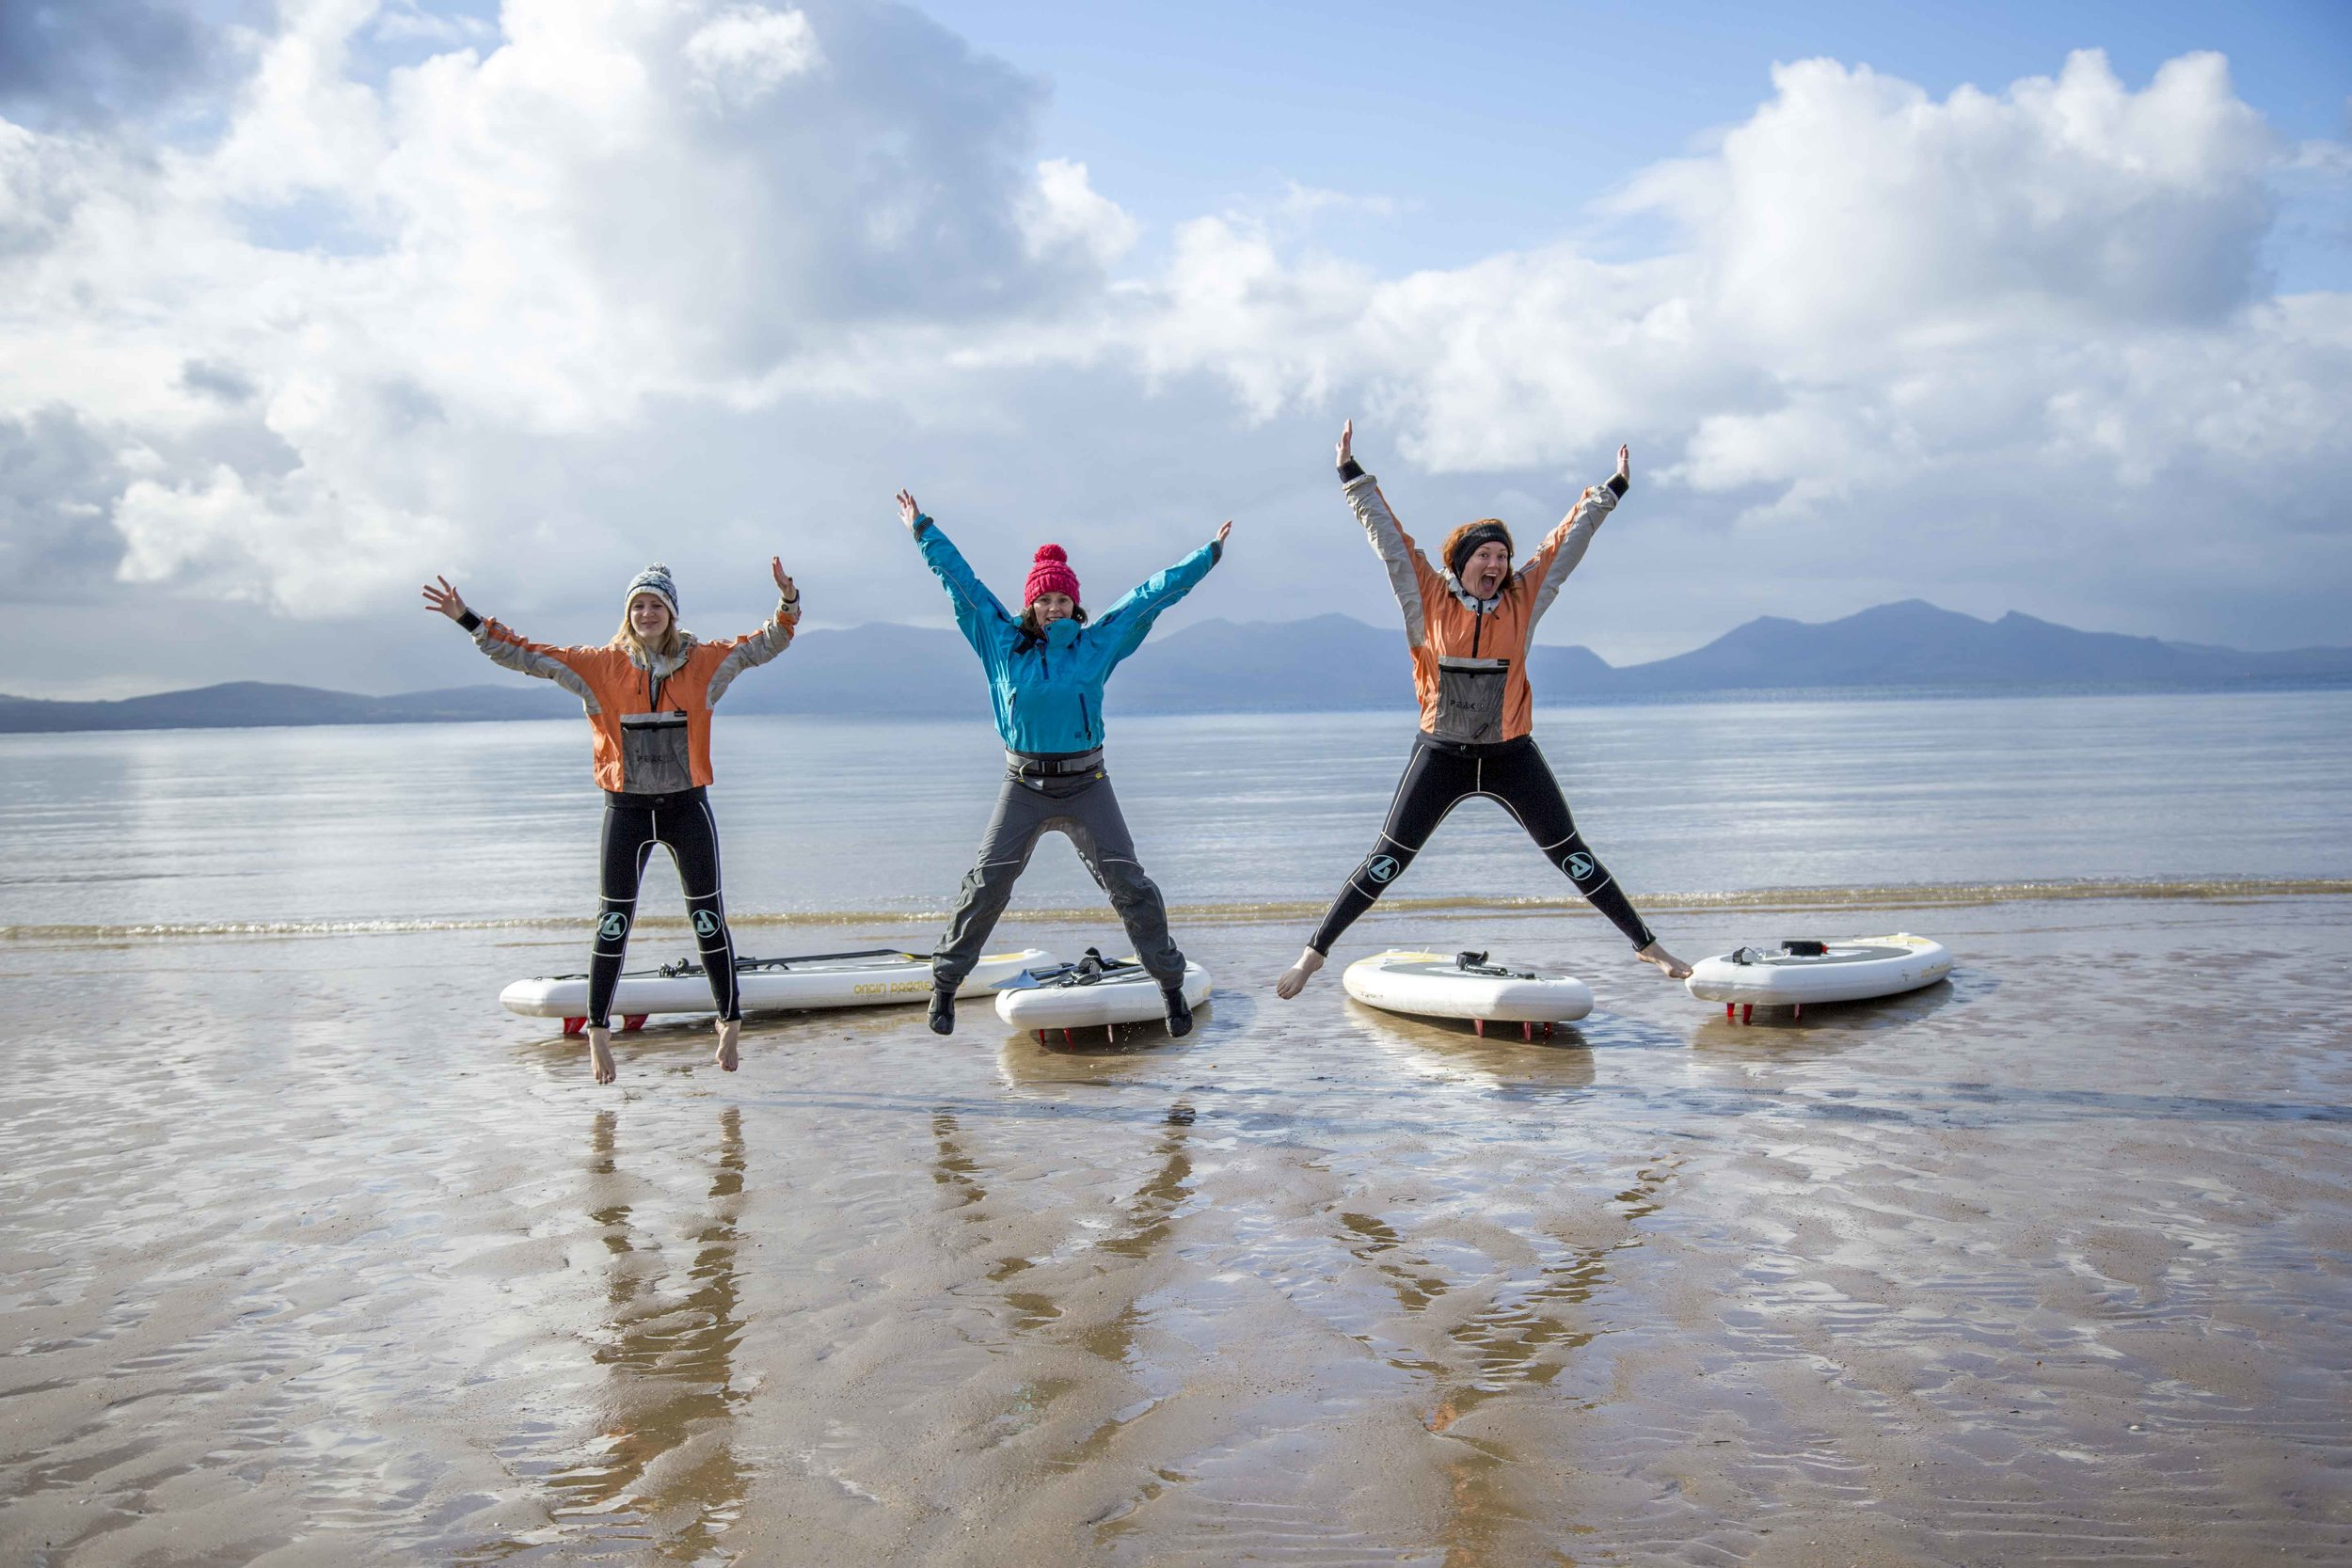 Psyched Paddlebosarding | Health Benefits doing SUP